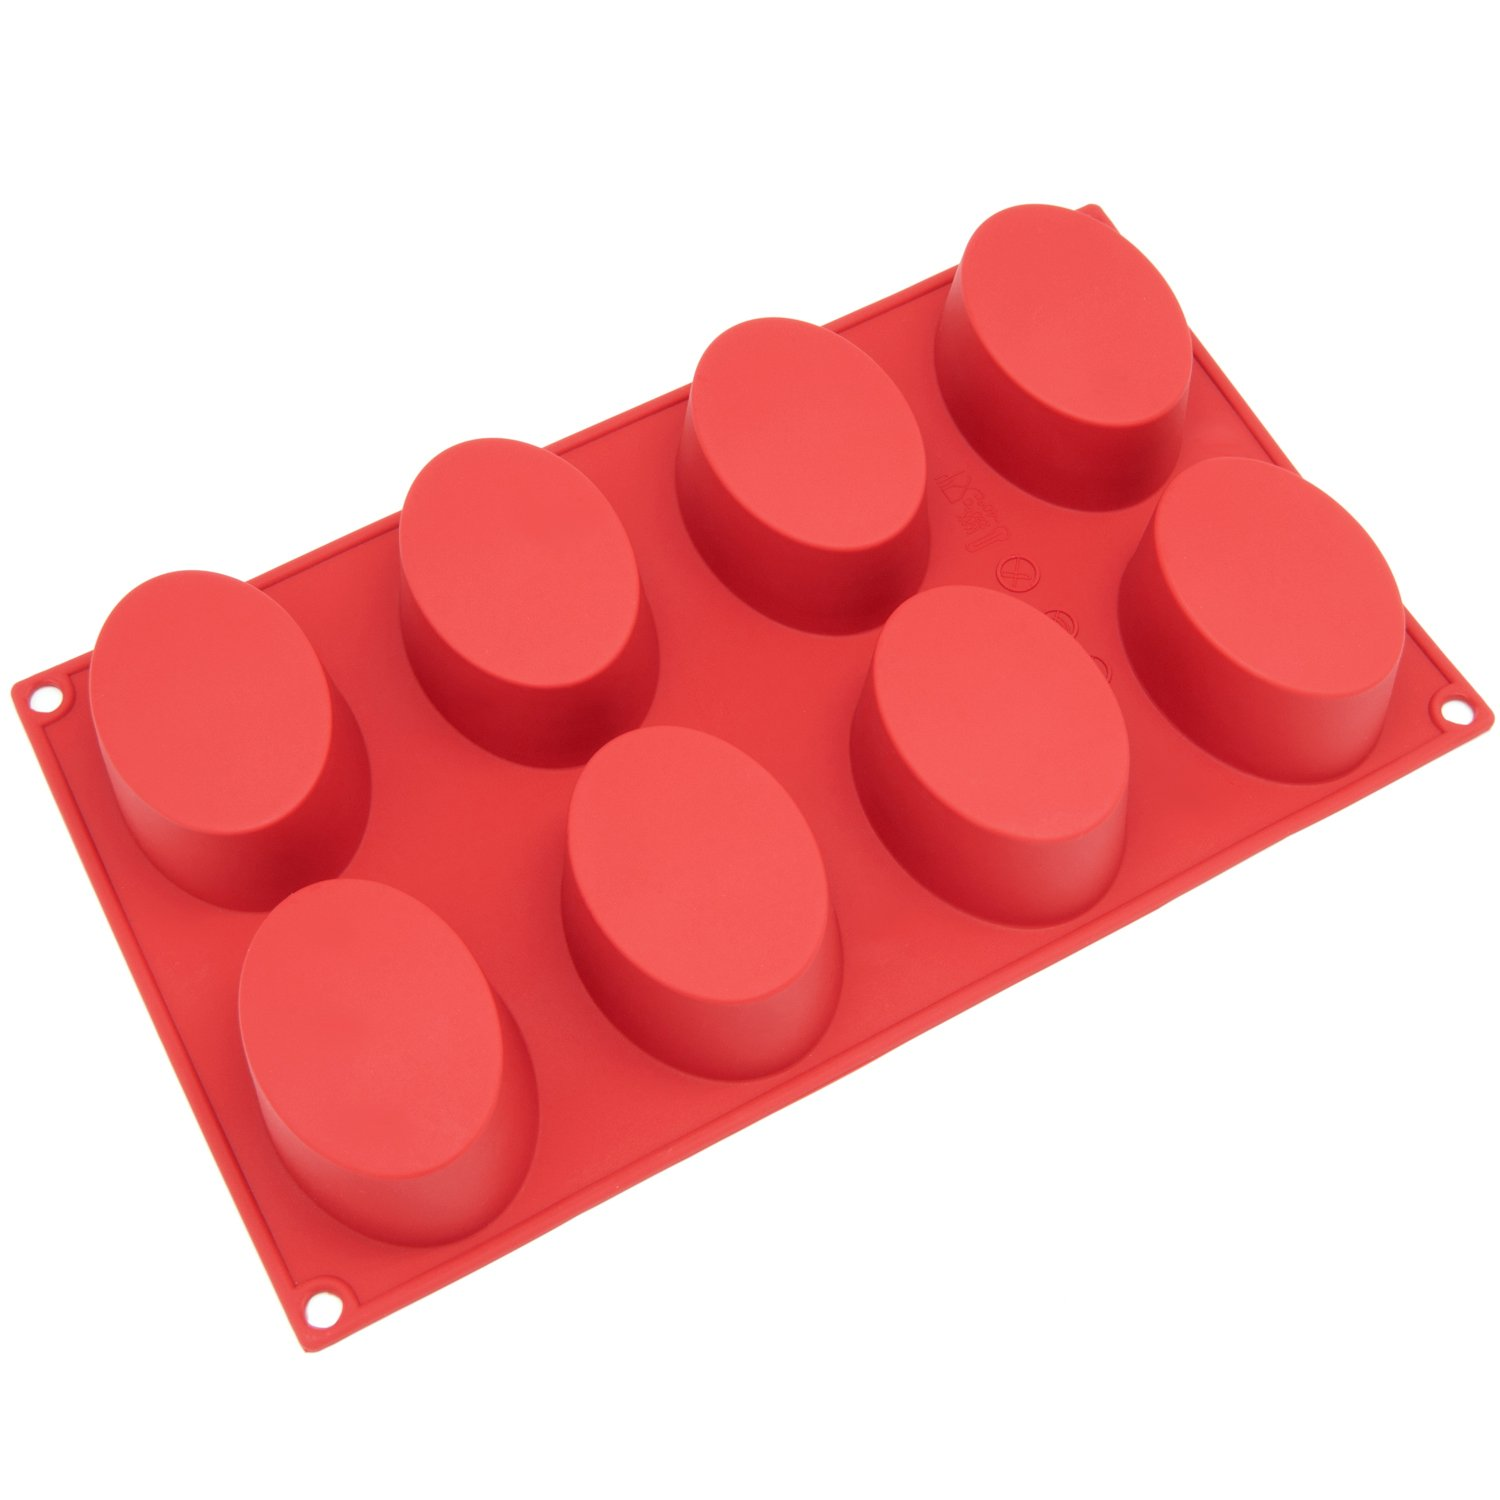 Freshware SL-118RD 8-Cavity Oval Silicone Mold for Soap, Cake, Bread, Cupcake, Cheesecake, Cornbread, Muffin, Brownie, and More